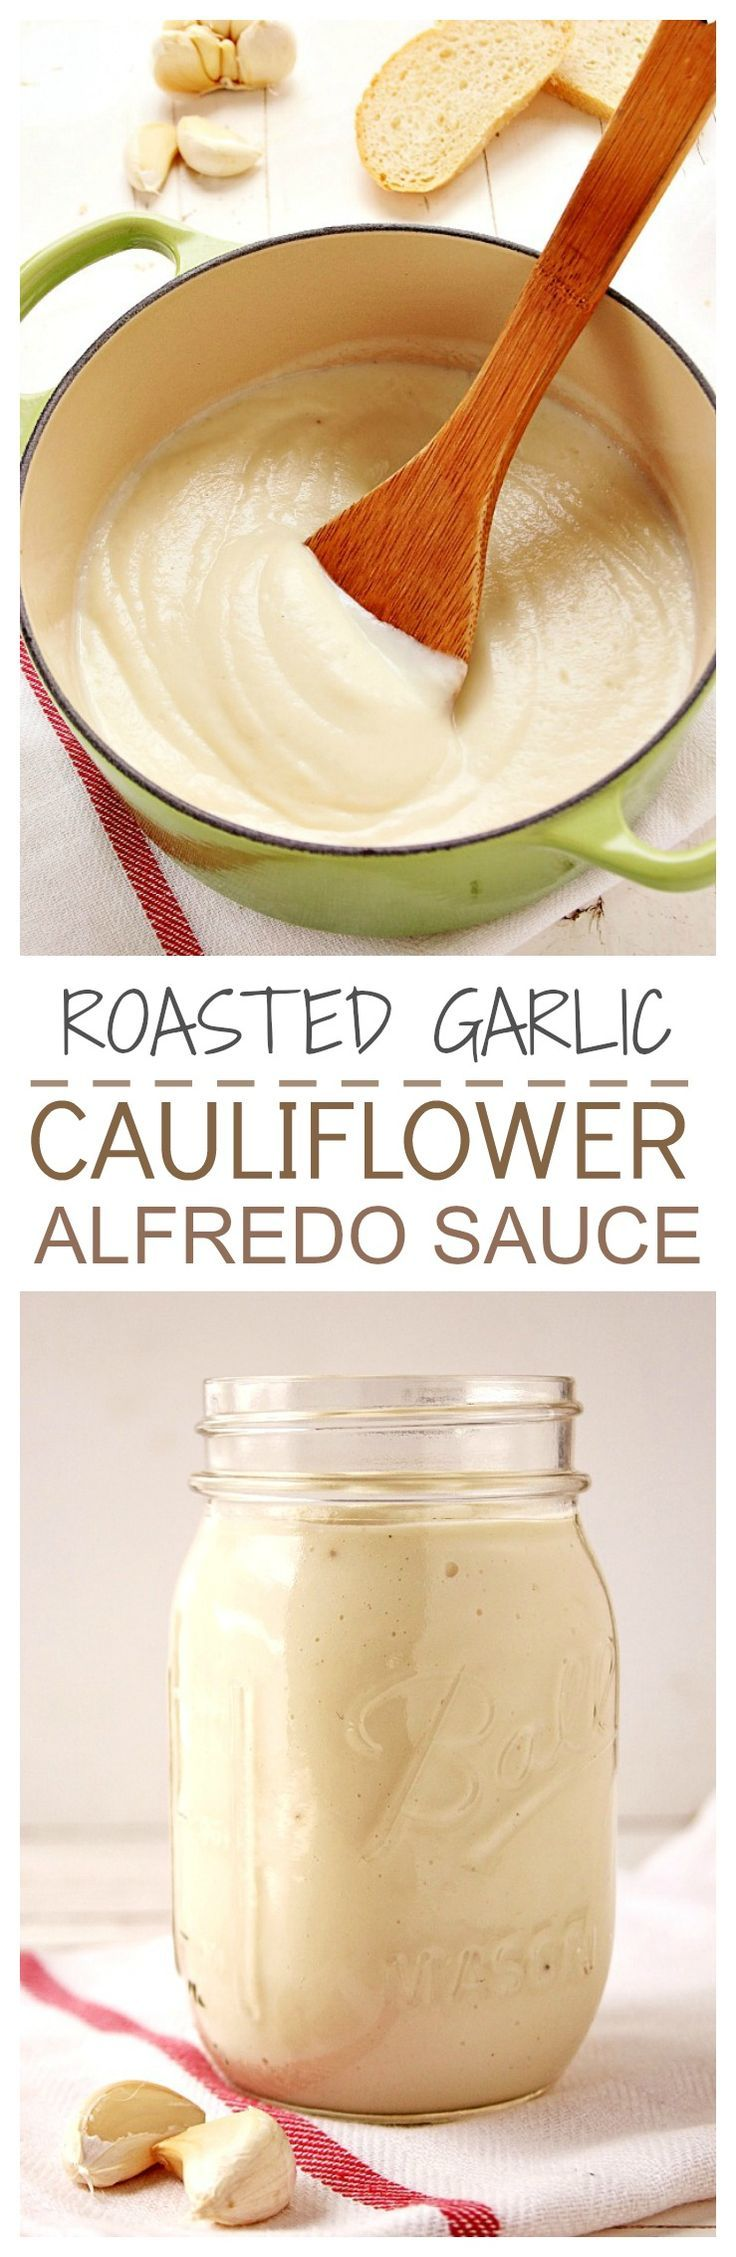 Healthy sauce made with cauliflower and roasted garlic with an addition of Parmesan. We can't stop eating it! Great on pasta and pizza!